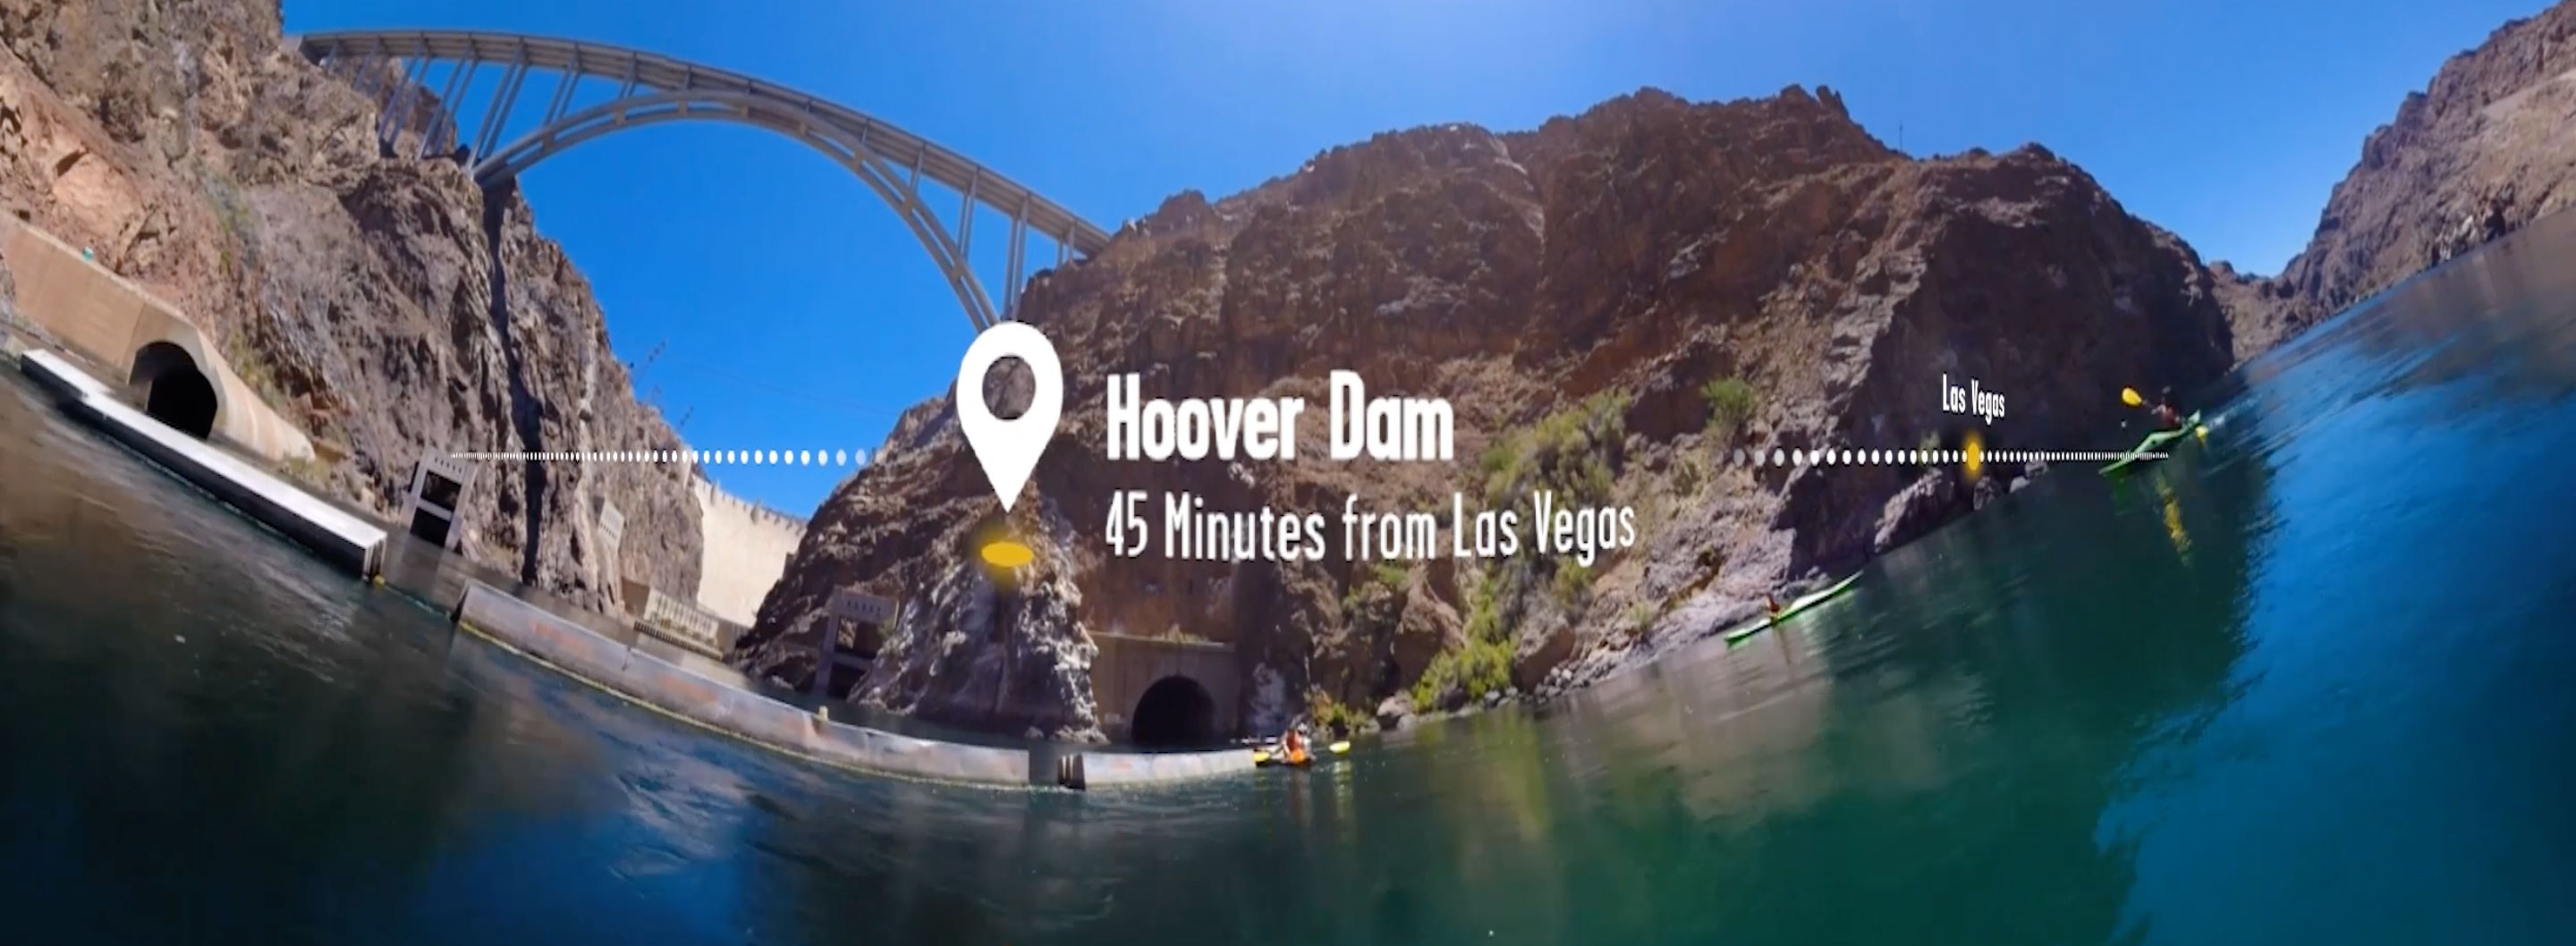 """TravelNevada.com Launches 360-Degree Video """"Don't Fence Me In"""" VR Tour"""